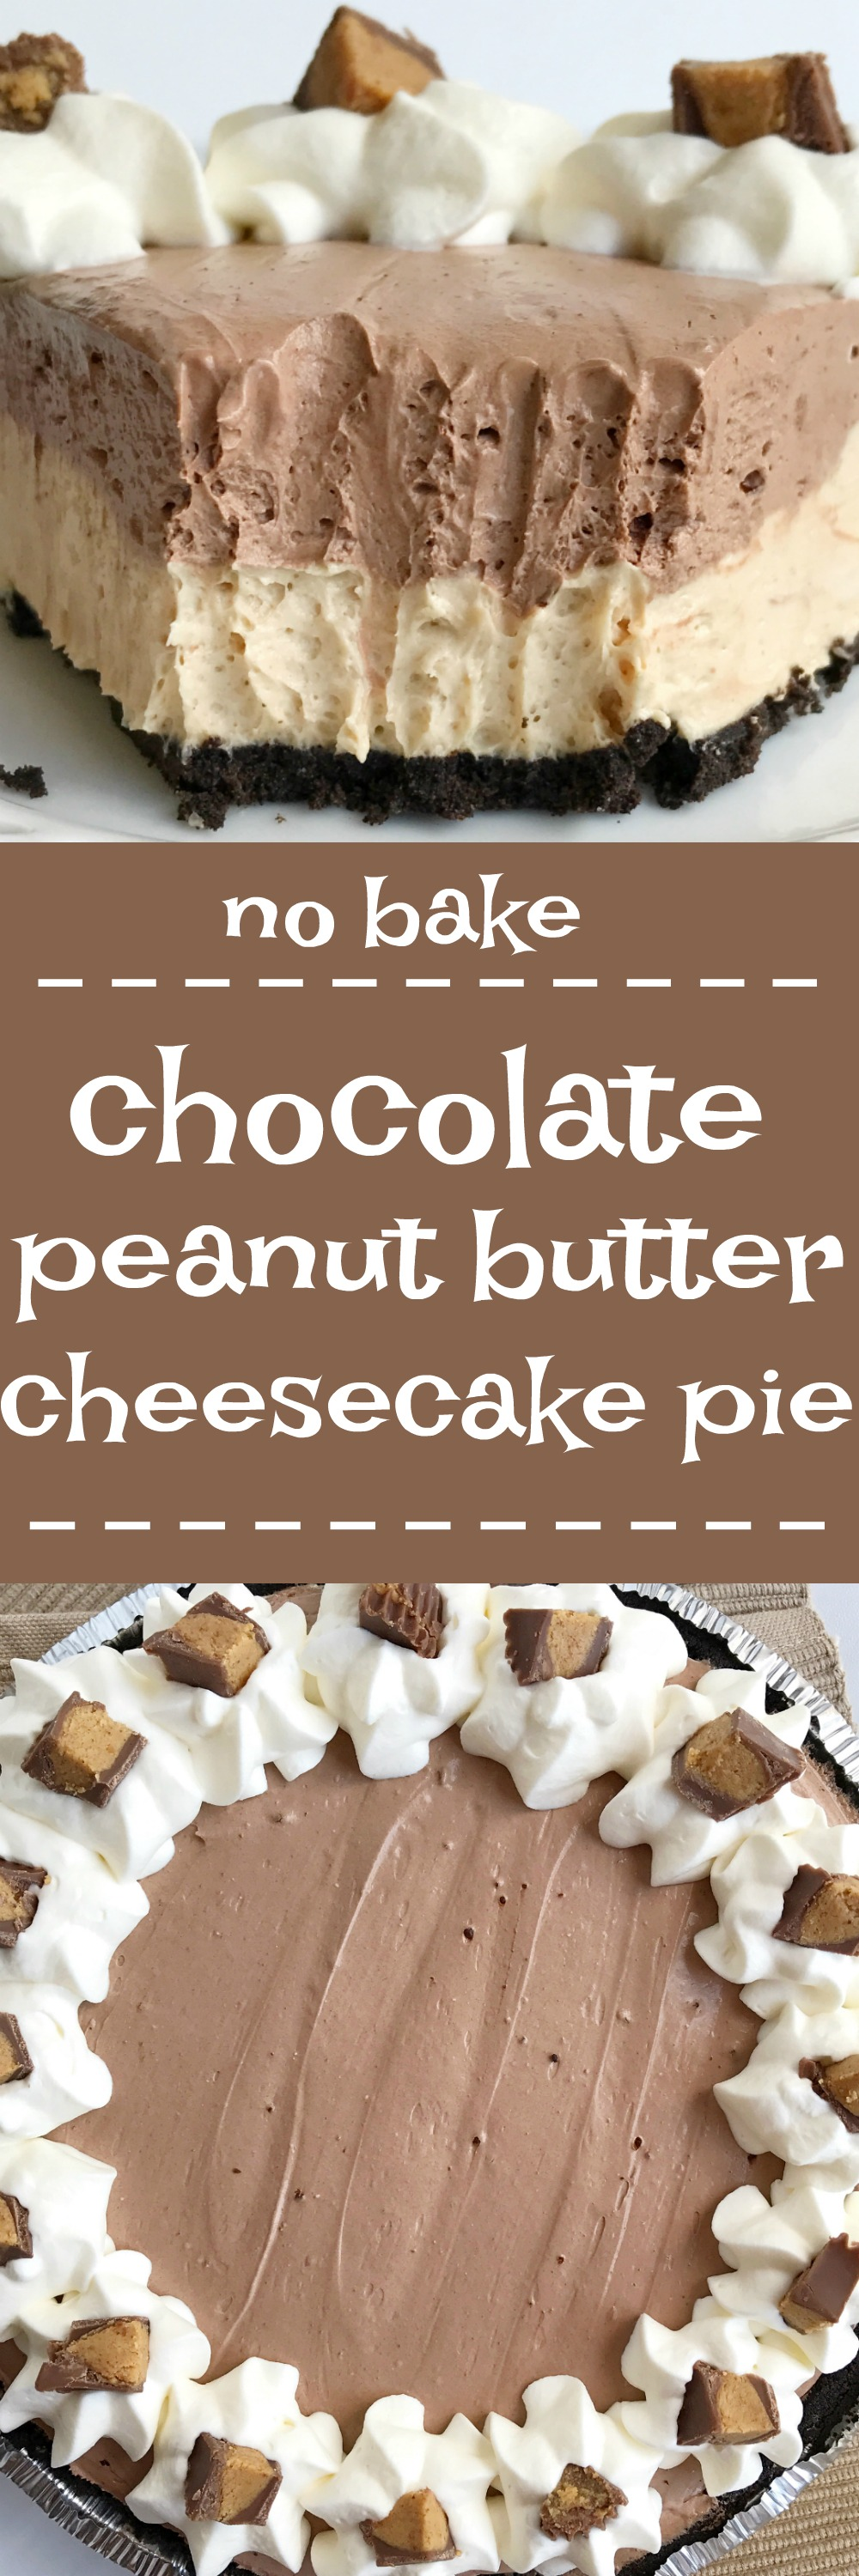 no bake} Chocolate Peanut Butter Cheesecake Pie - Together as Family